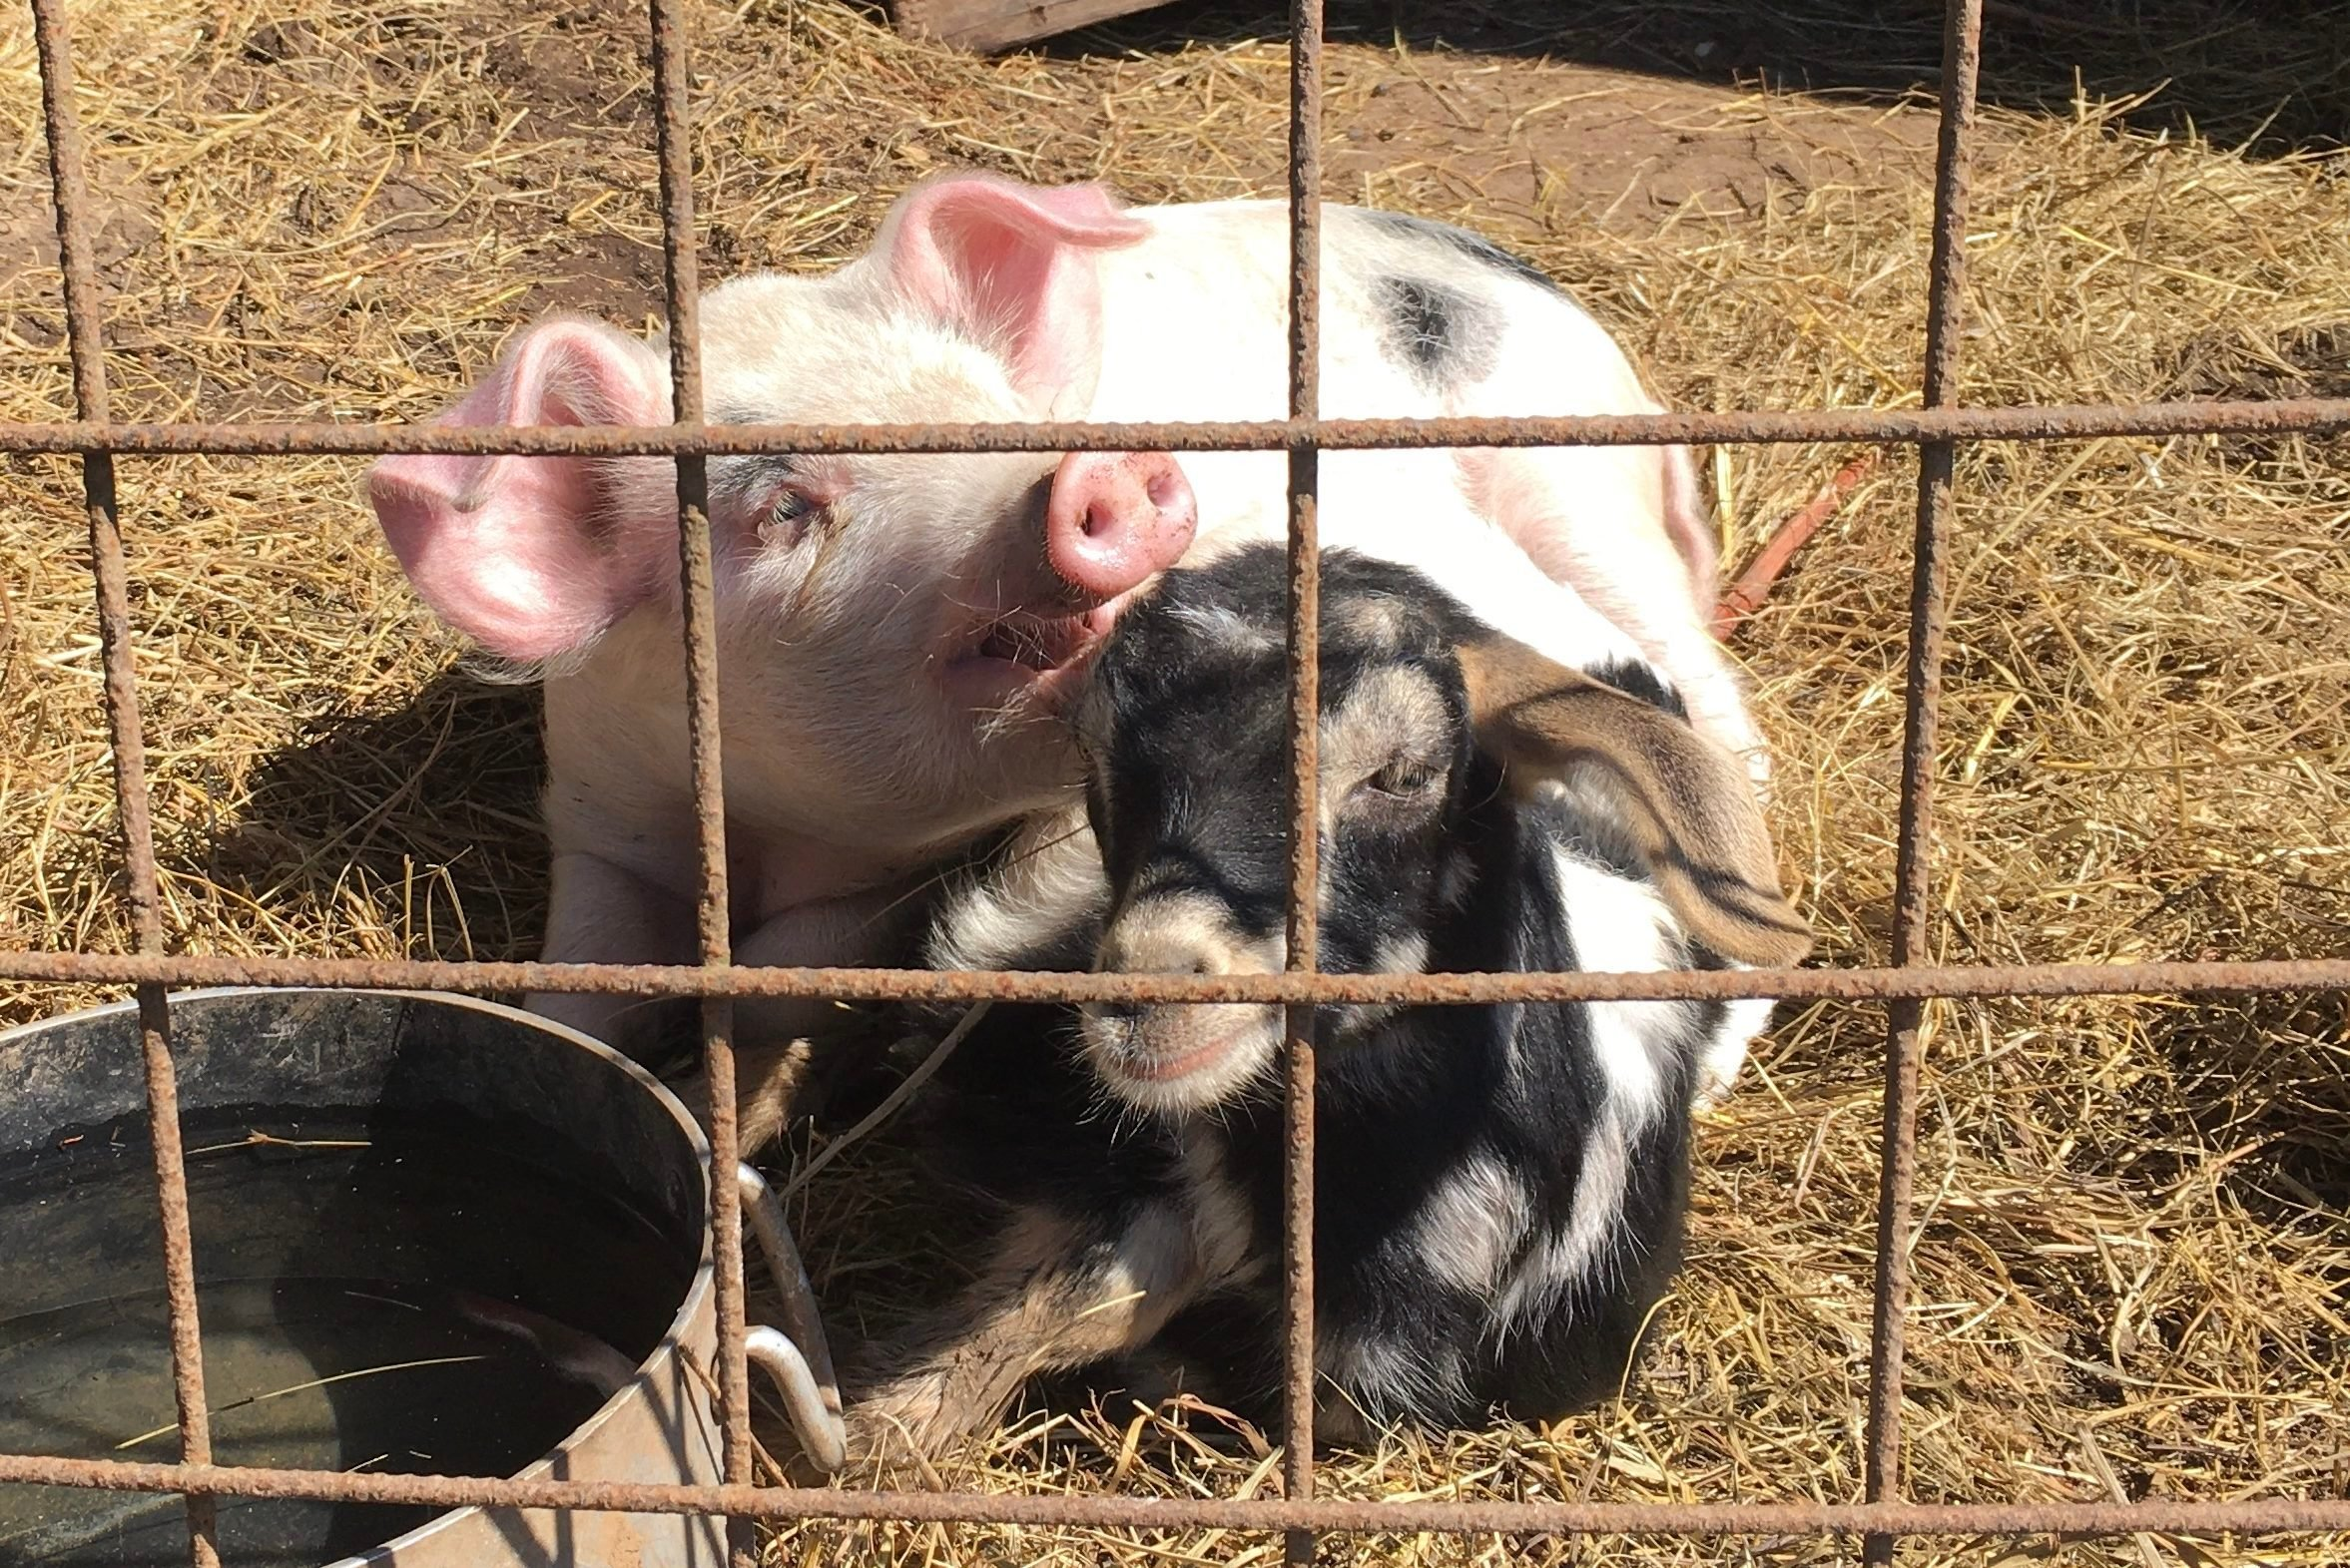 a small pig and a small goat cuddle in the hay in their pen